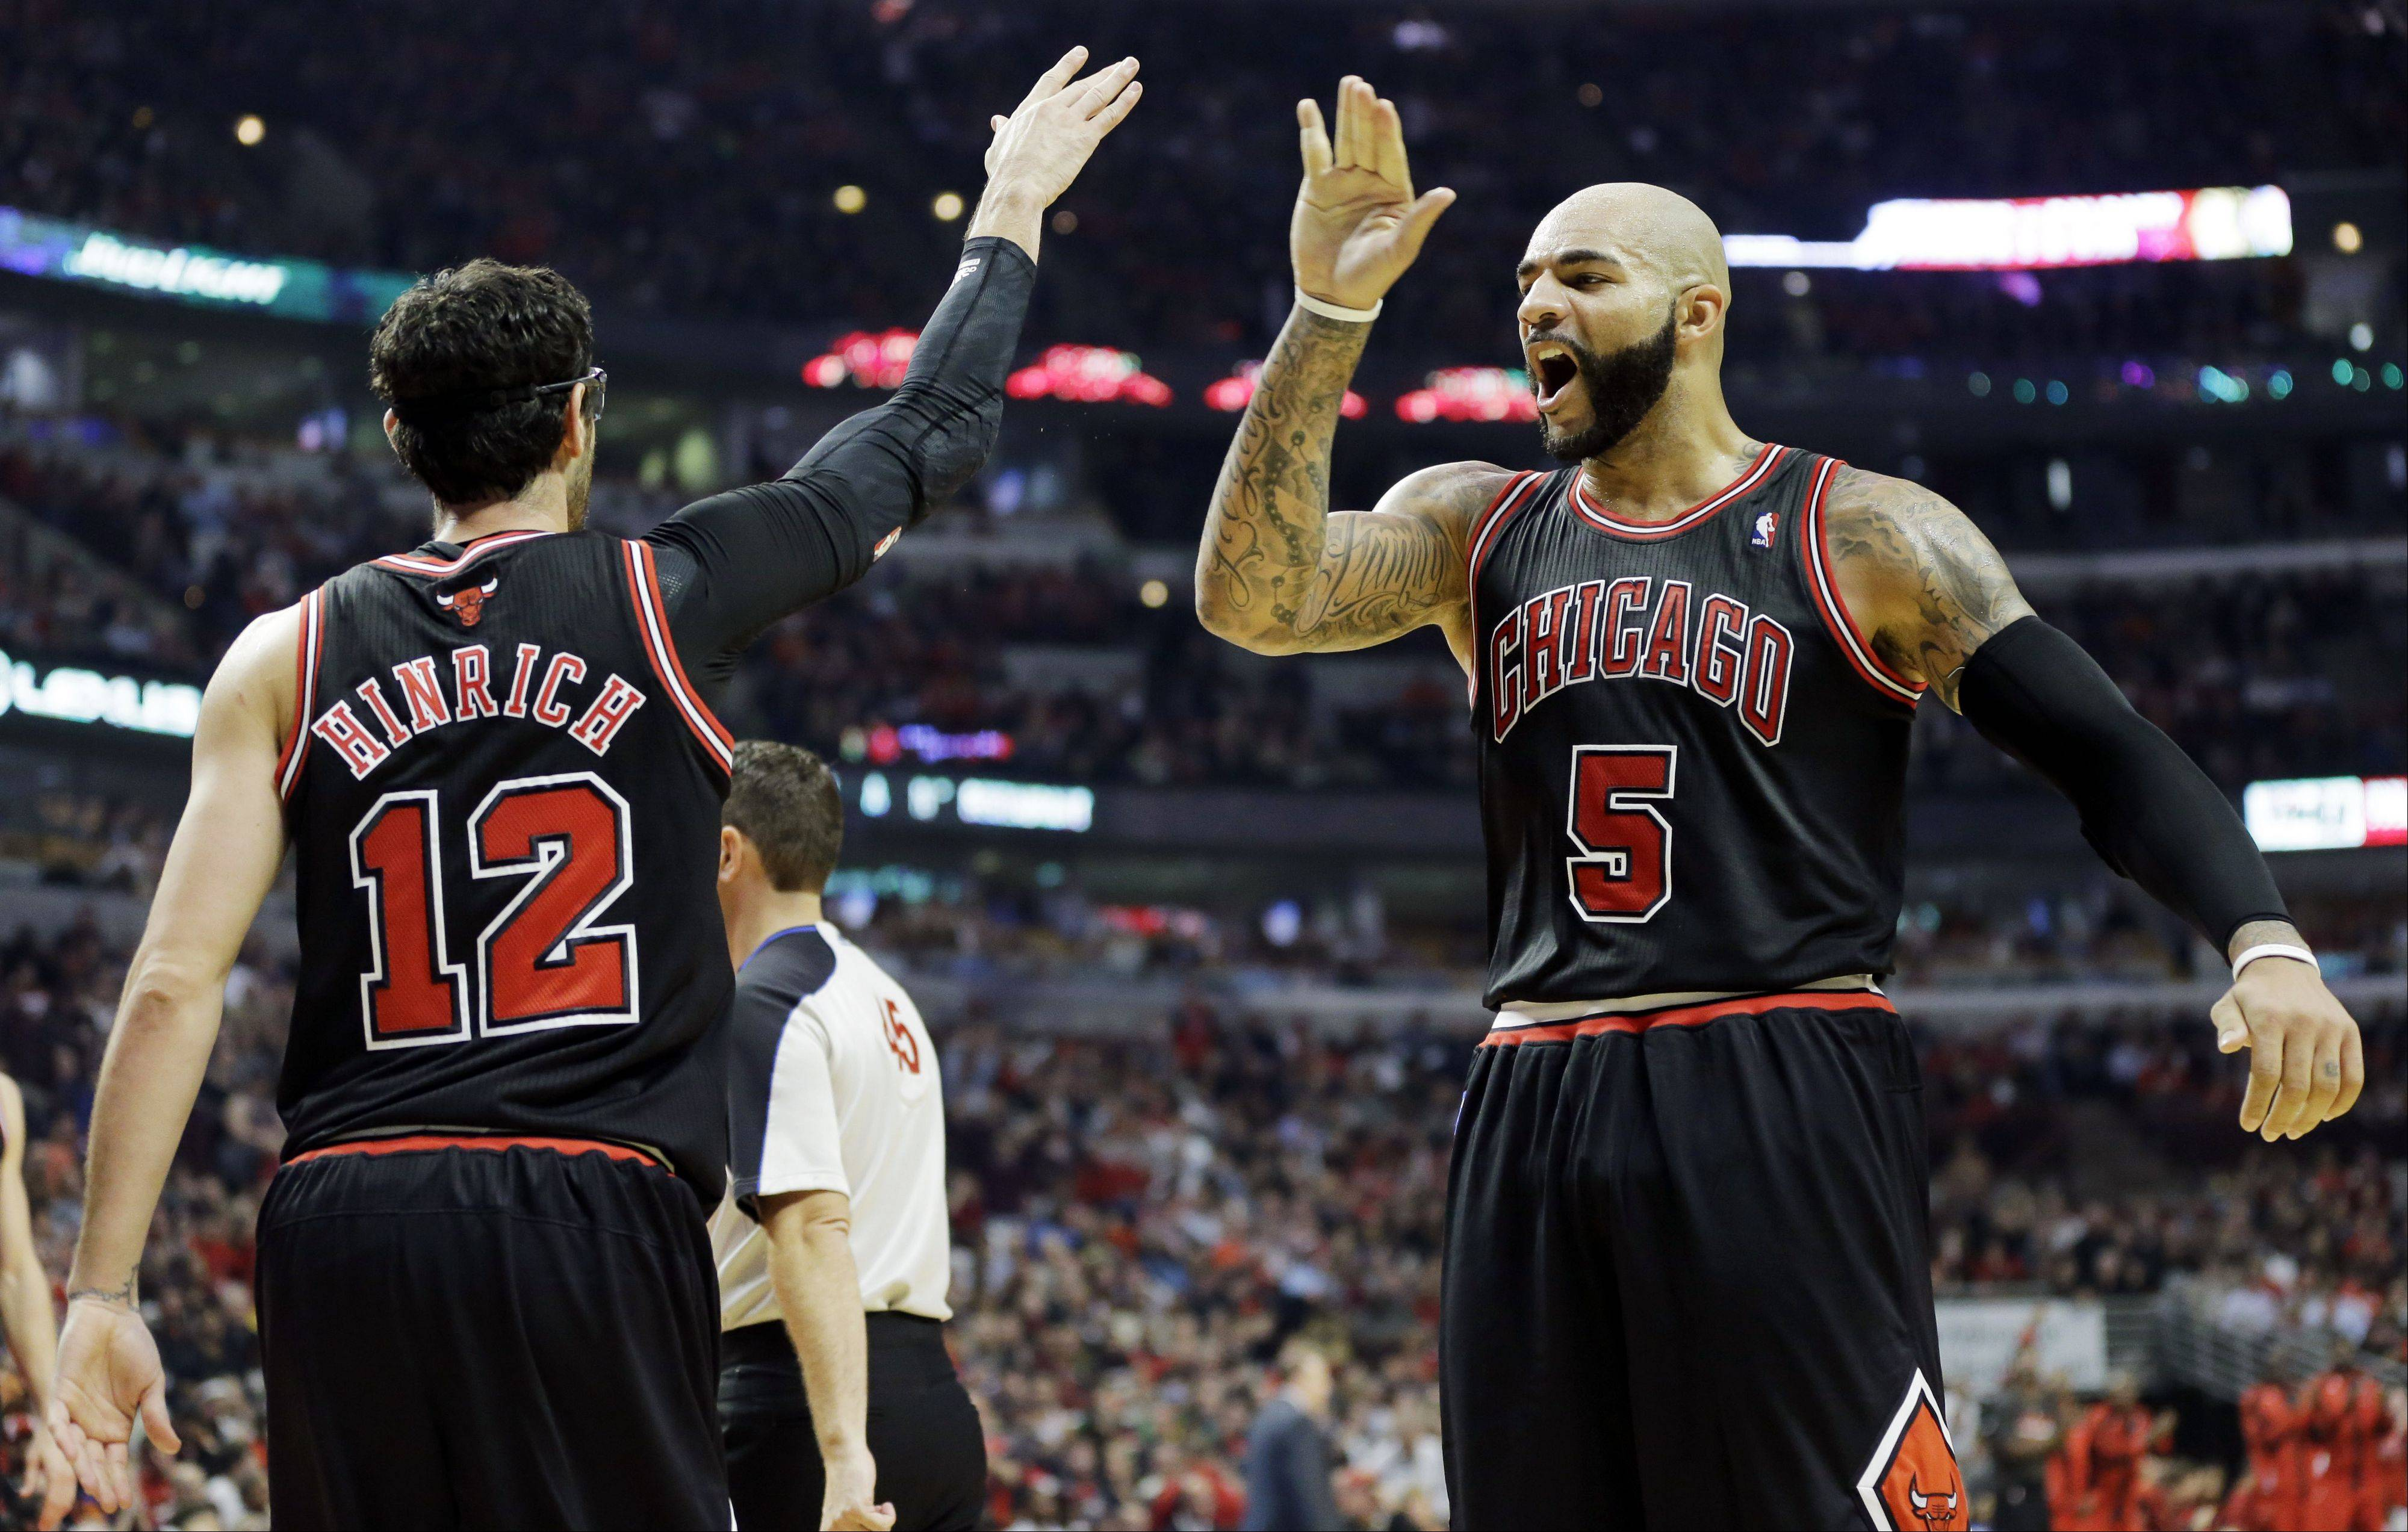 Chicago Bulls guard Kirk Hinrich (12) celebrates with forward Carlos Boozer after scoring a basket during the second half.